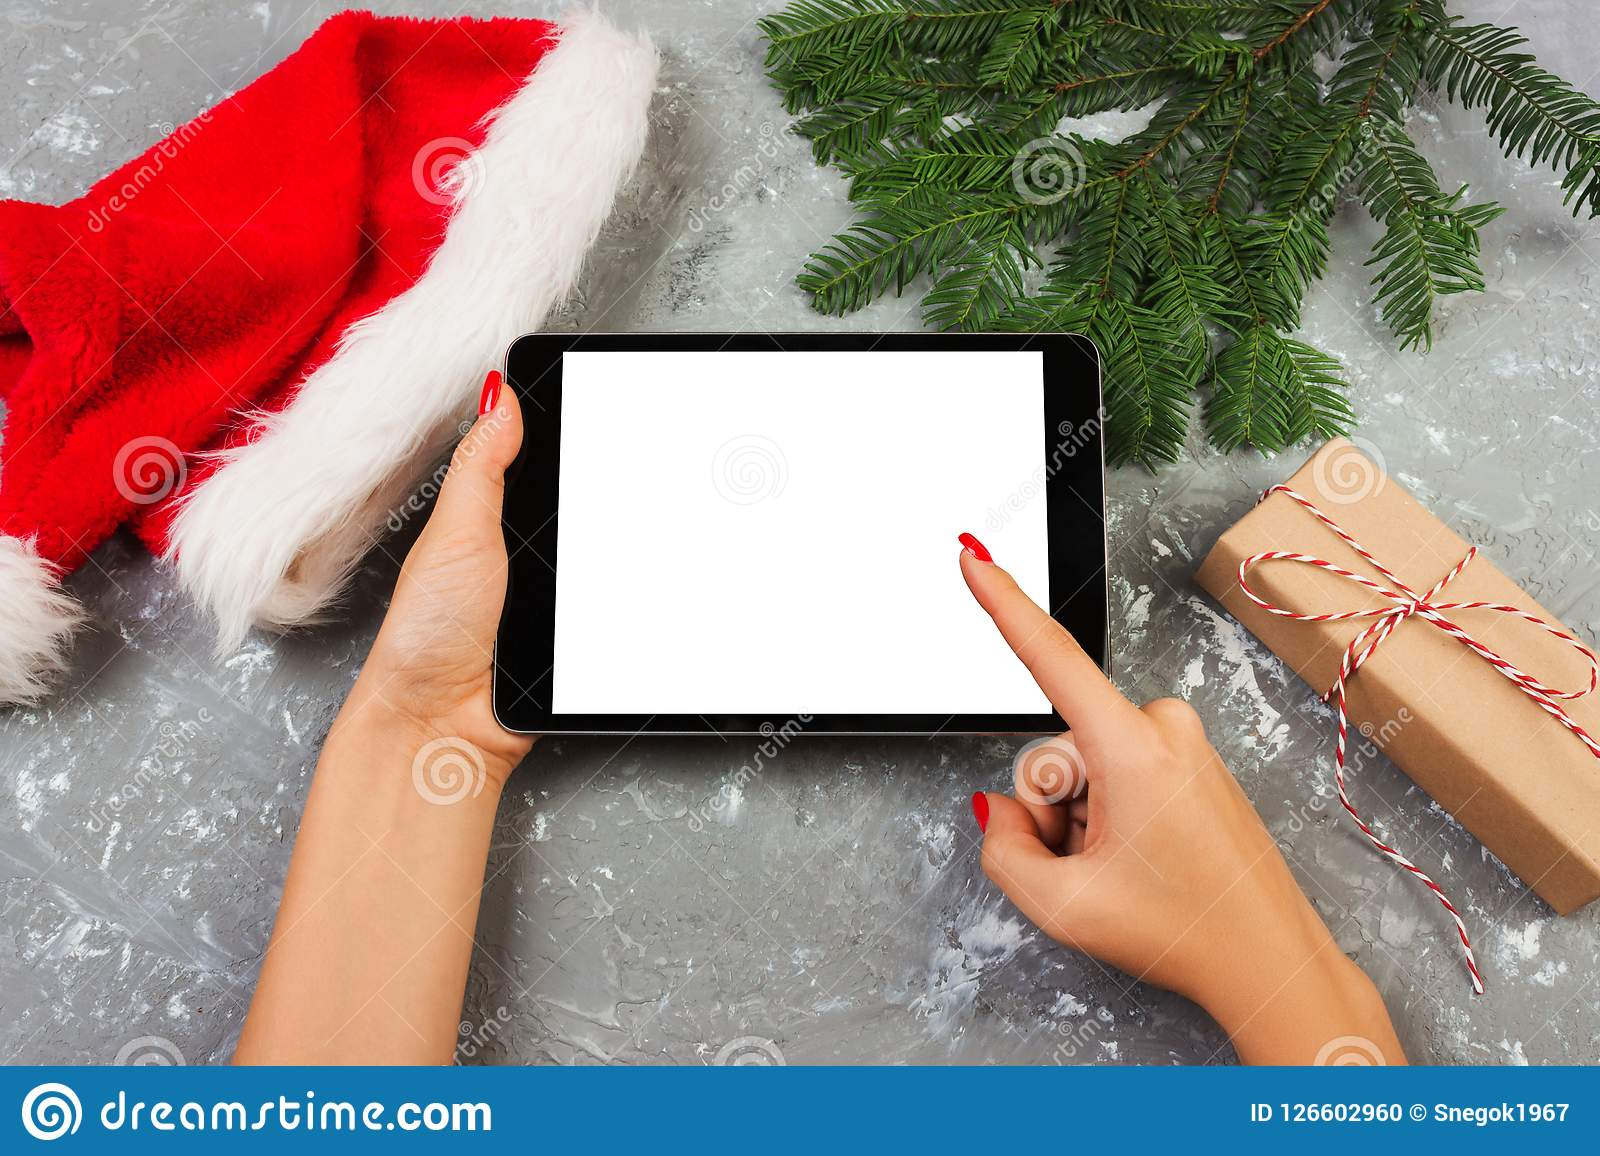 Girl using tablet technology in home, person holding computer on background Christmas decoration, female hands texting, mockup tem